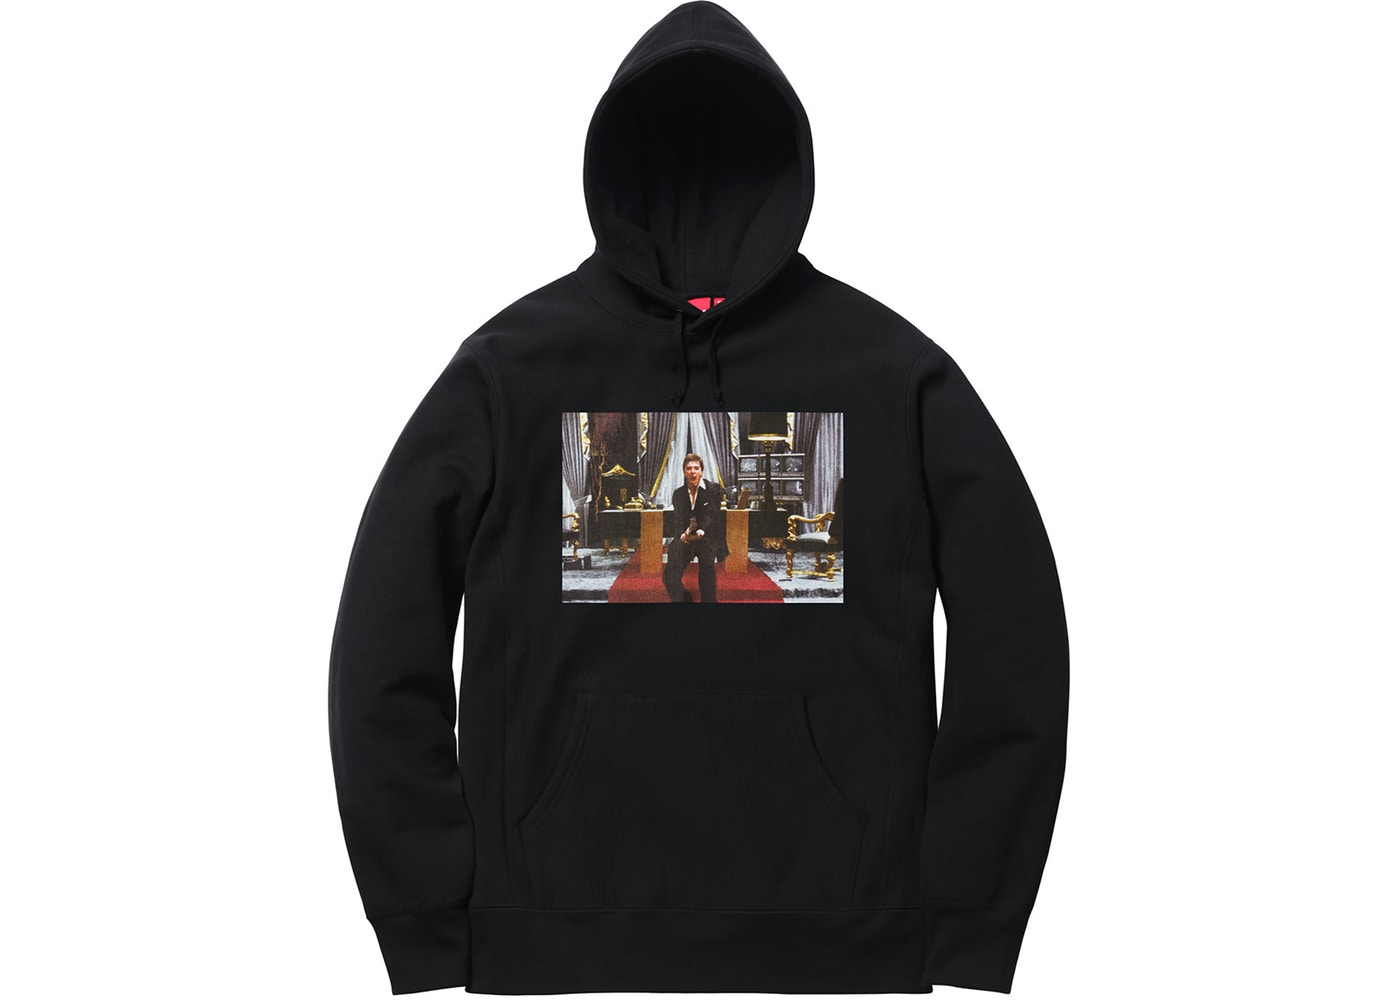 ef7f15f0b6b2 Supreme Scarface Friend Hooded Sweatshirt Black - FW17